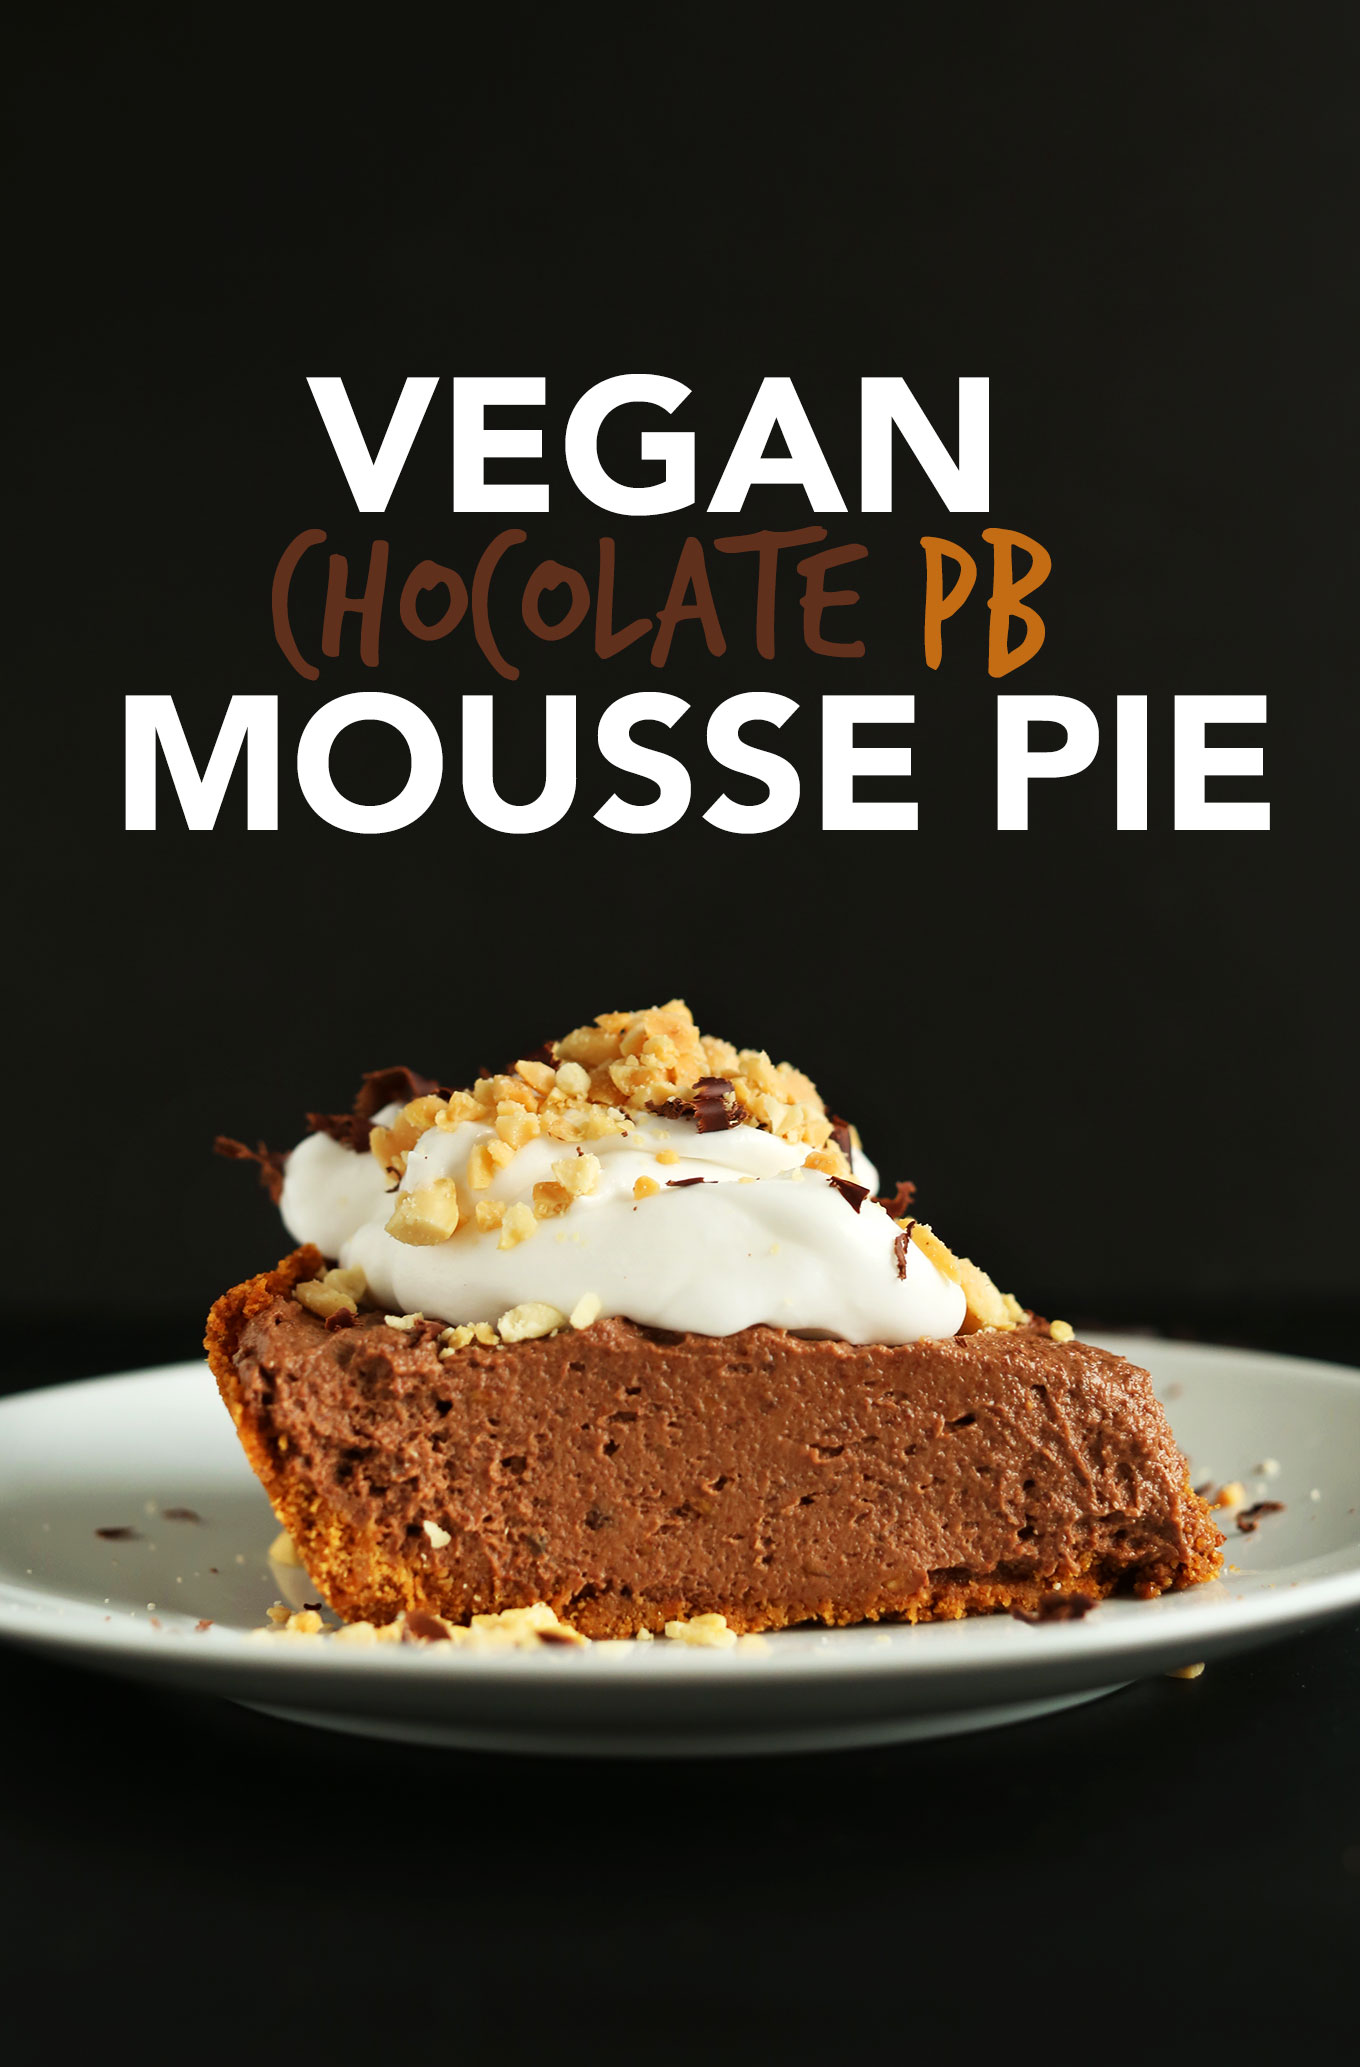 Slice of Vegan Chocolate PB Mousse Pie with coconut whipped cream